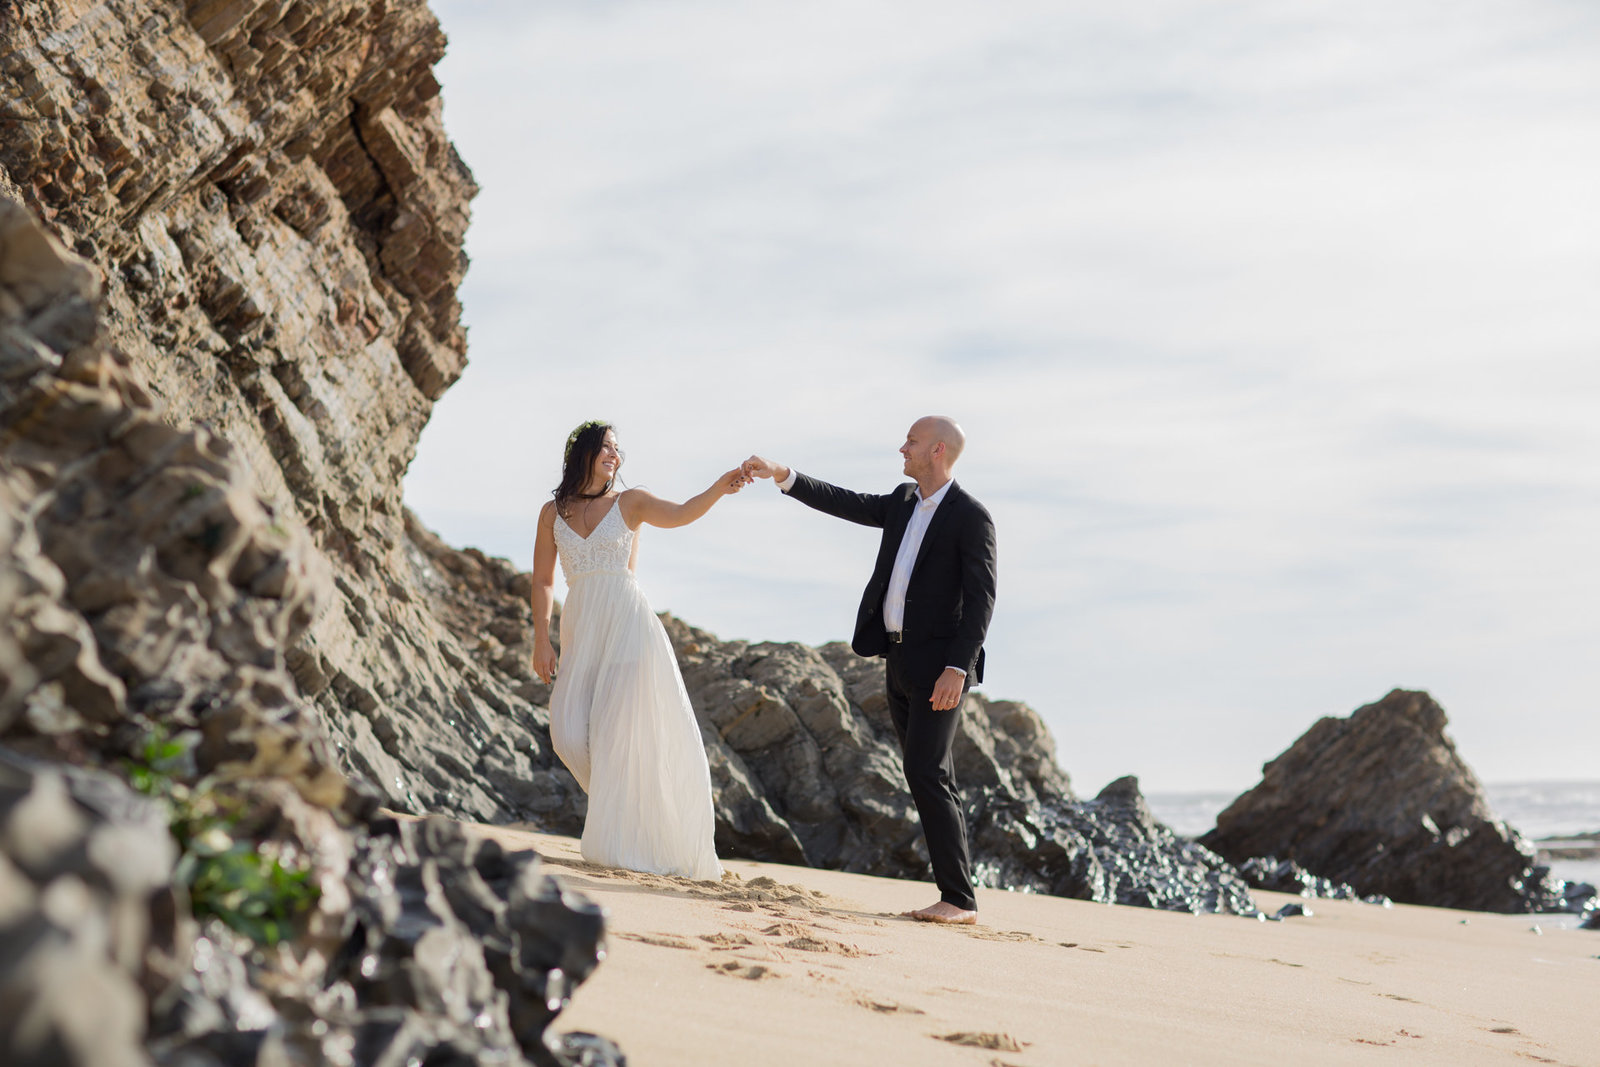 Striking bride and groom enjoying seaside wedding at Ritz Carlton beach in Half Moon Bay California